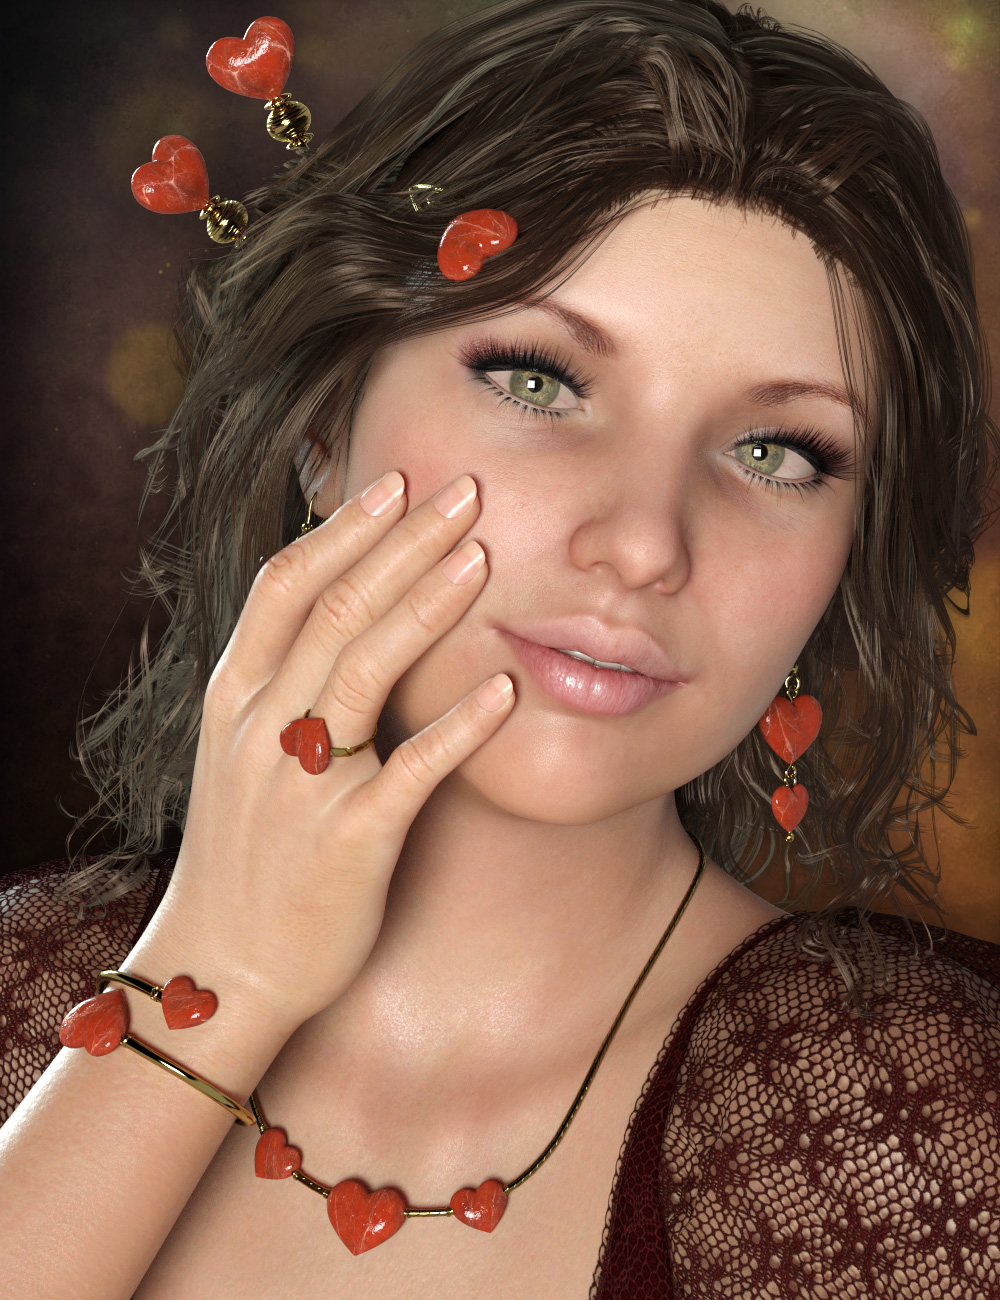 Little Heart Jewelry for Genesis 8 Female(s) by: esha, 3D Models by Daz 3D